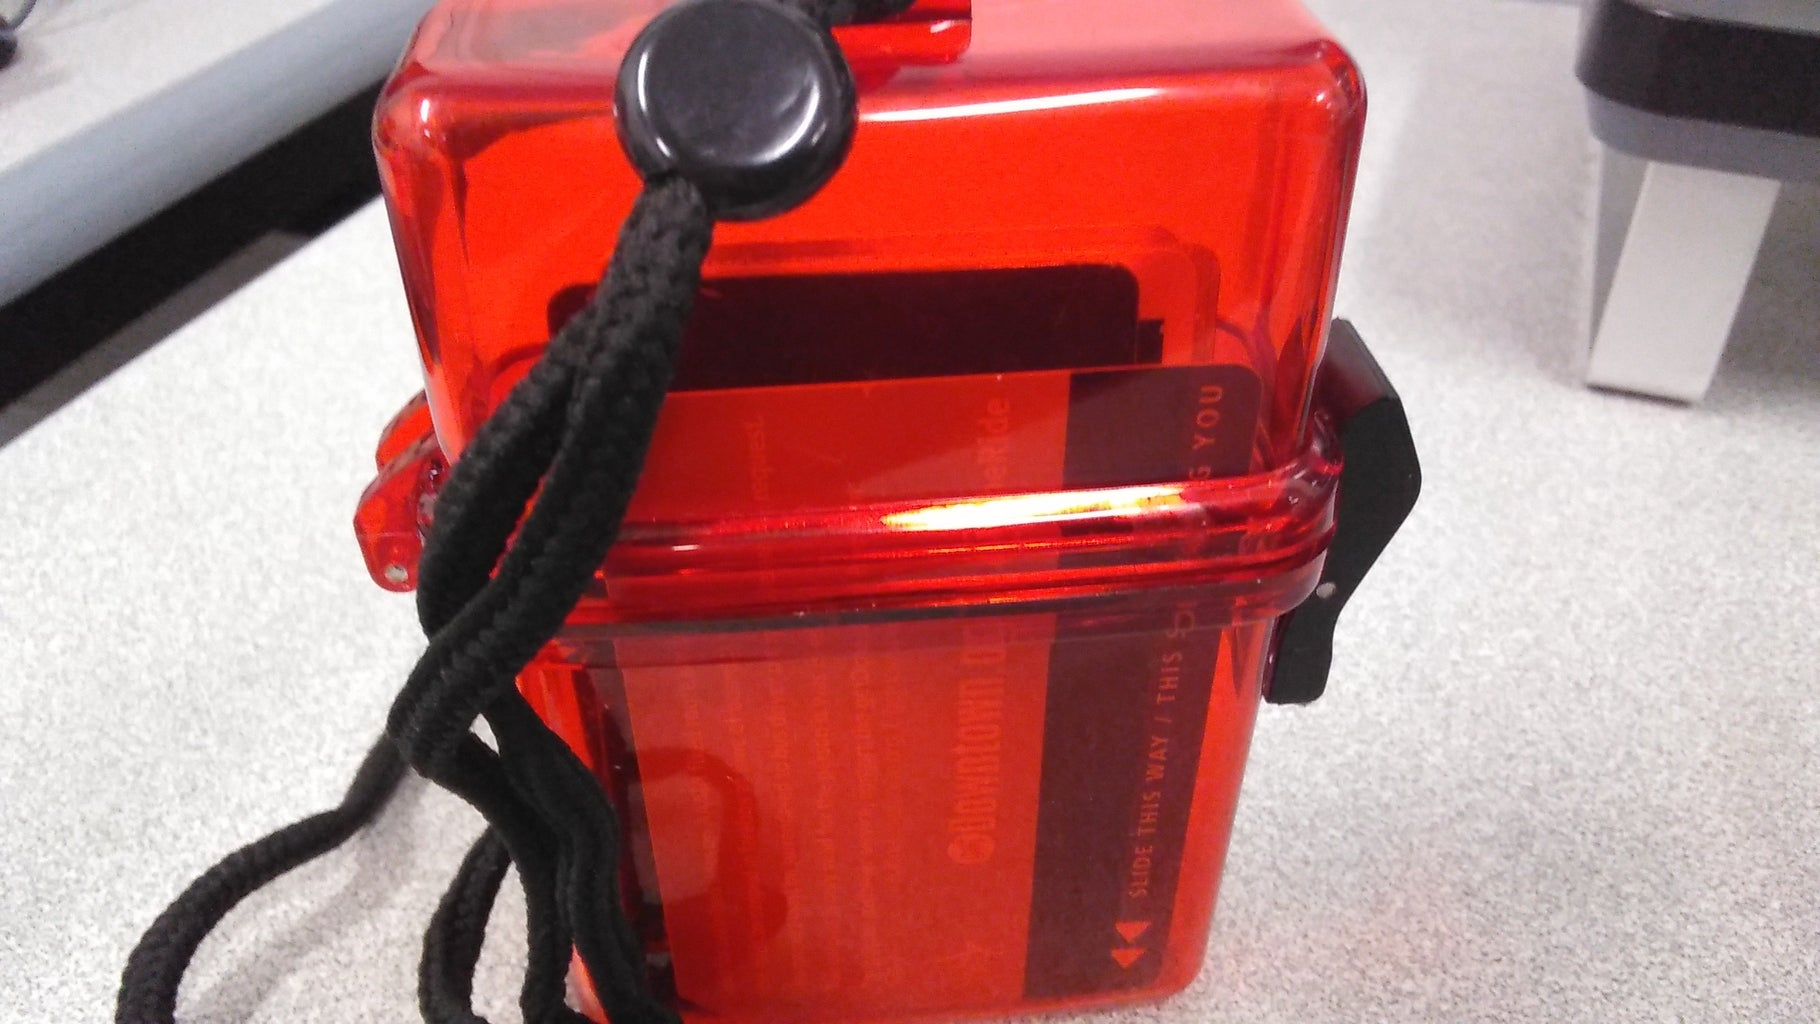 Fill Your Keep With Items and Close With the Side Lock